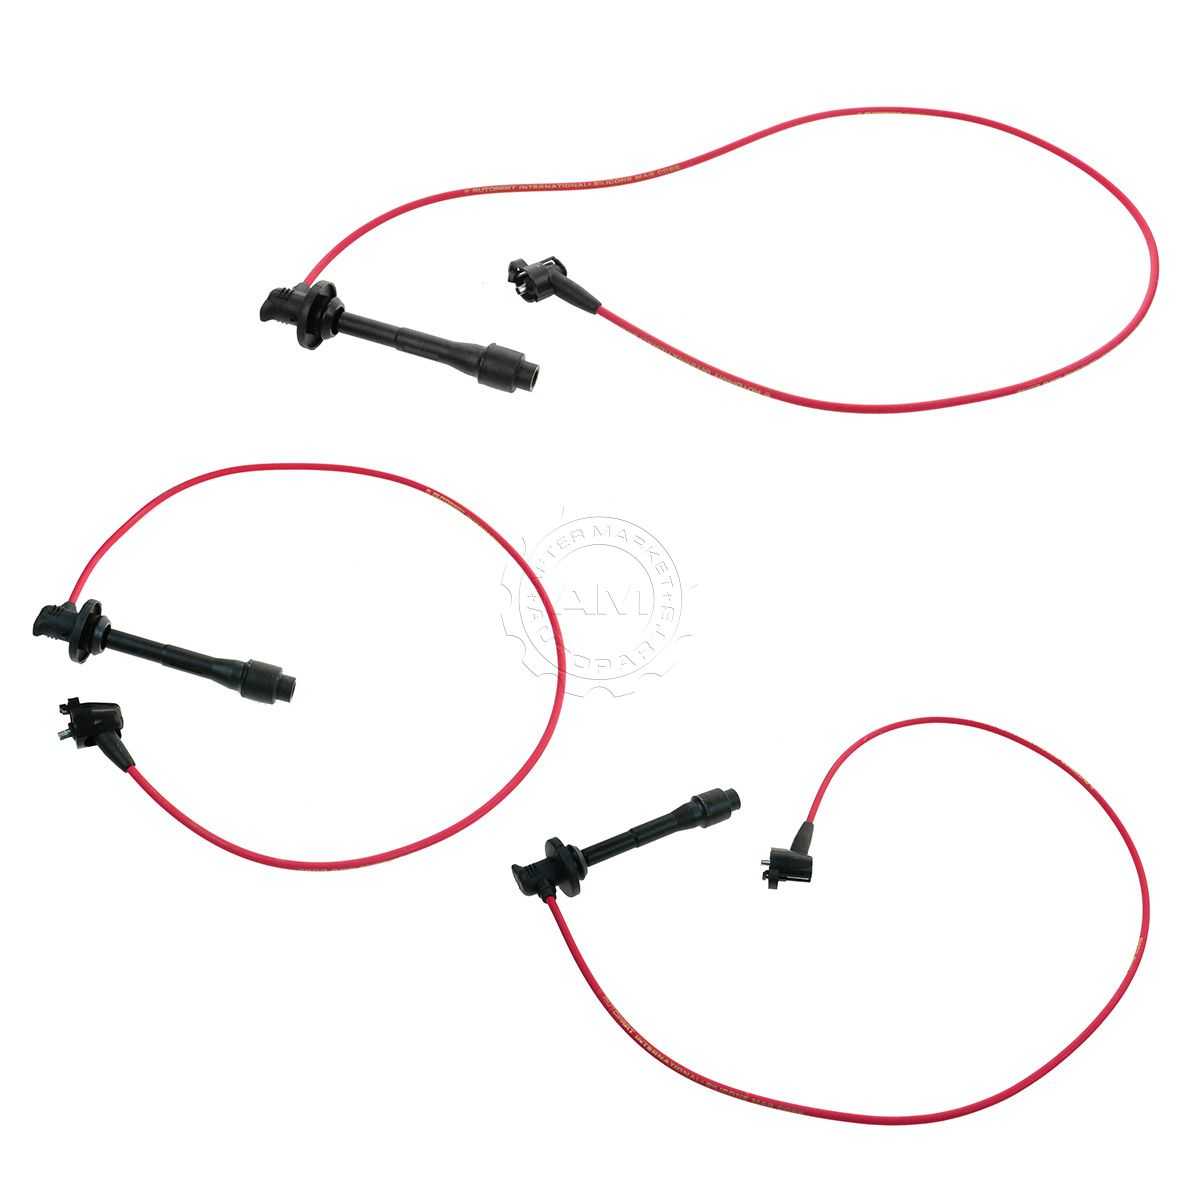 Ignition Spark Plug Wire Set for 4Runner T100 Tacoma Tundra Pickup on 1996 4runner wiring diagram, home wiring diagram, 2000 4runner thermostat, 2000 4runner distributor, 1995 4runner wiring diagram, toyota wiring diagram, 2000 4runner motor, 2000 4runner exhaust, 2000 4runner engine swap, 2000 4runner firing order, 2000 4runner frame, 2000 4runner dash removal, 2000 4runner starter, 2000 4runner rear suspension, 1998 4runner wiring diagram, 2000 4runner maintenance schedule, 2000 4runner radiator, 1990 4runner wiring diagram, 2000 4runner schematic, 2000 4runner repair manual,